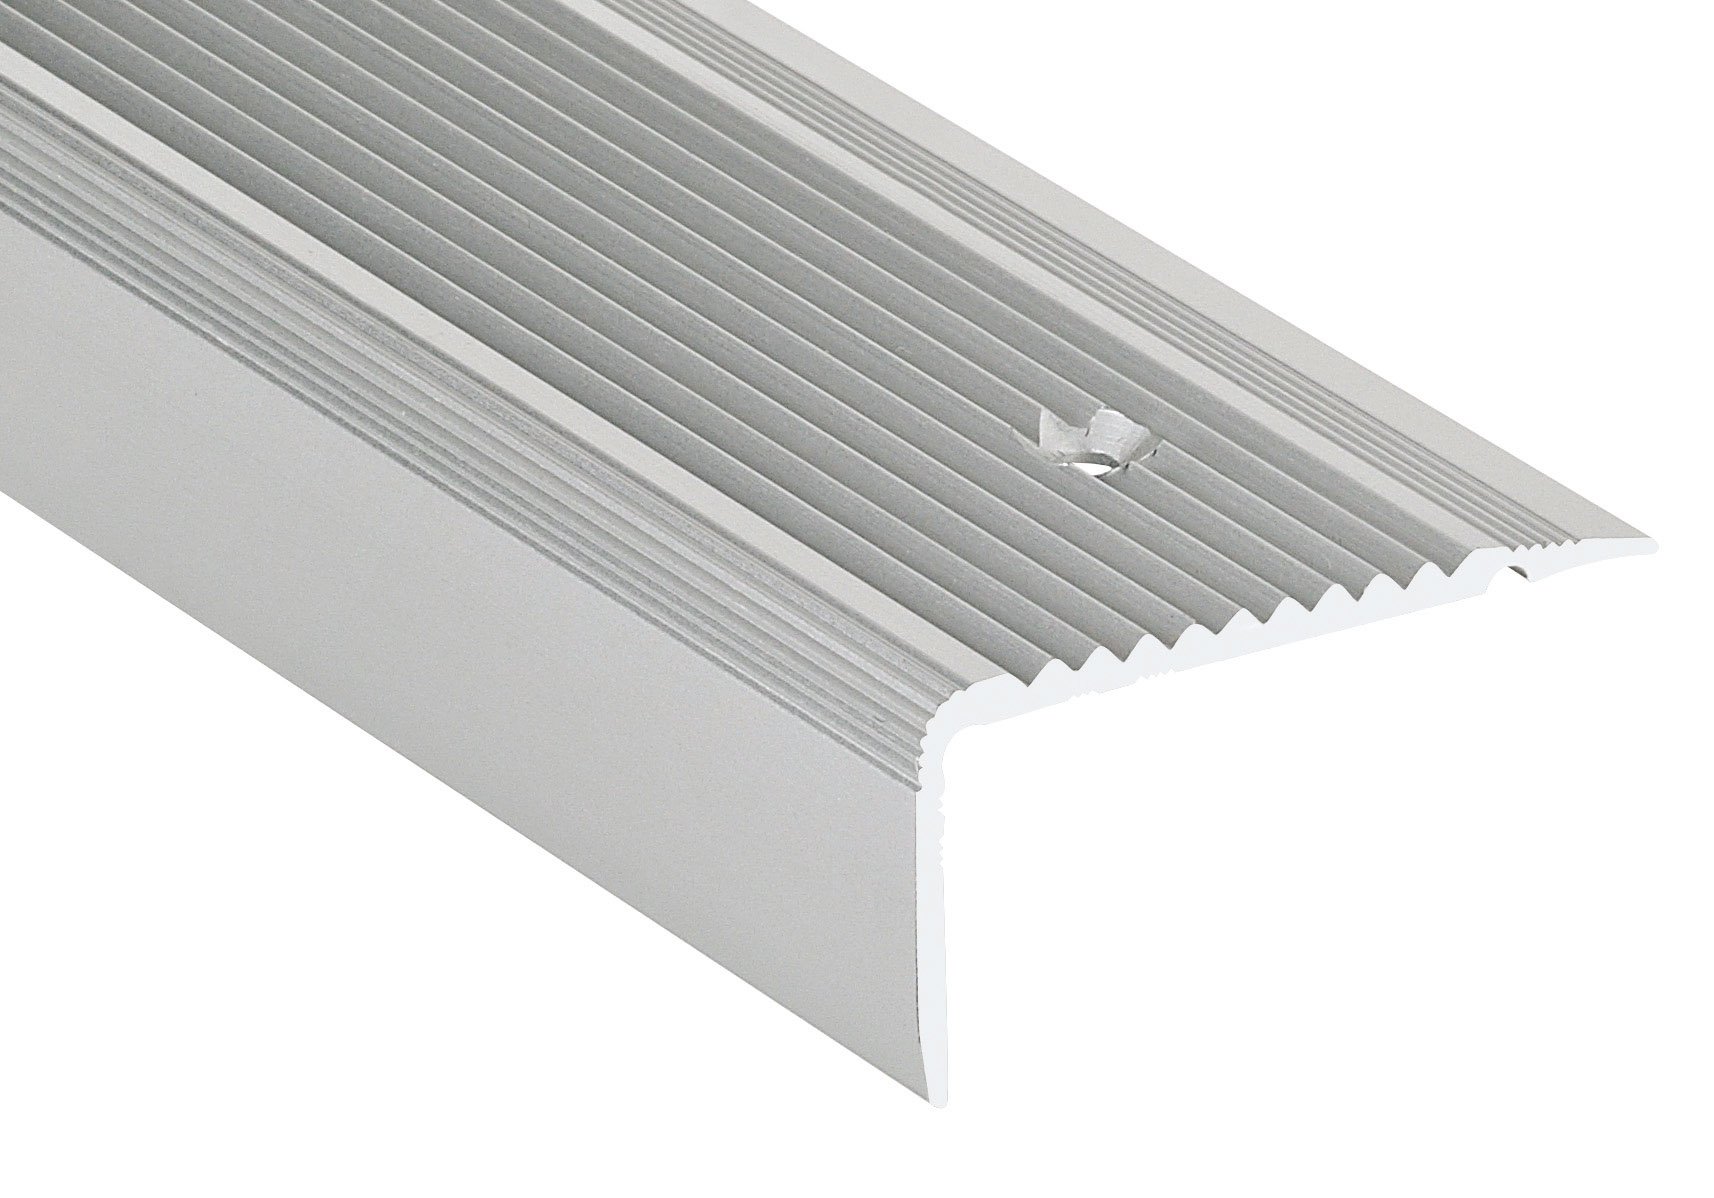 Long Skirt Special Step Nosing Waccess Solutions Prox Secur